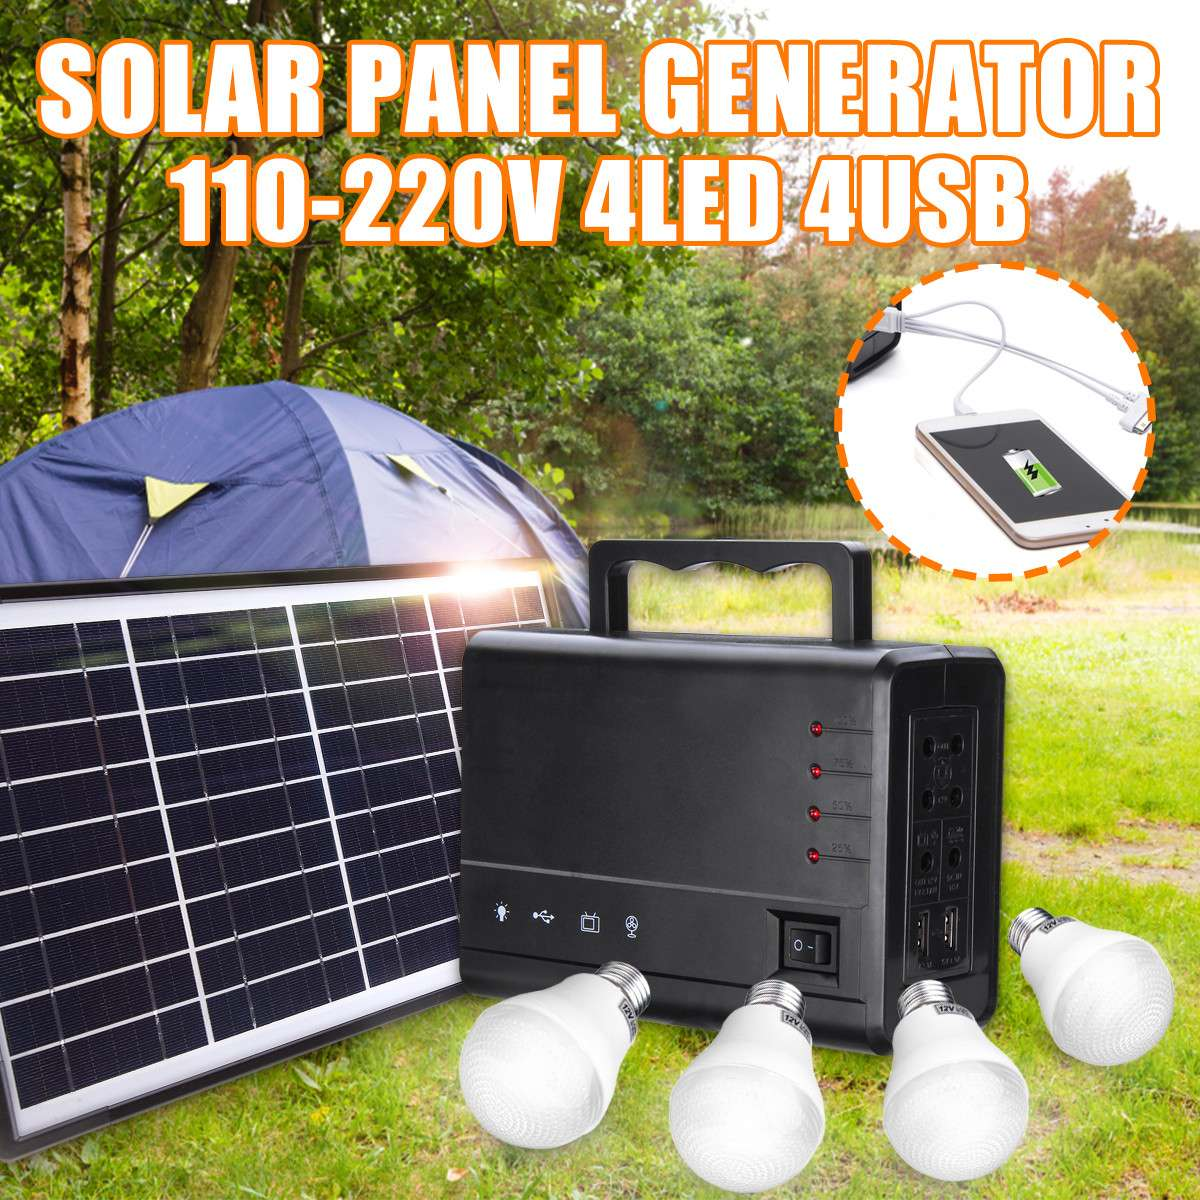 110-220V 4USB Solar Panel Generator Solar Generator System With LED Lamp Solar Panels for Home Outdoor Camping Lighting110-220V 4USB Solar Panel Generator Solar Generator System With LED Lamp Solar Panels for Home Outdoor Camping Lighting